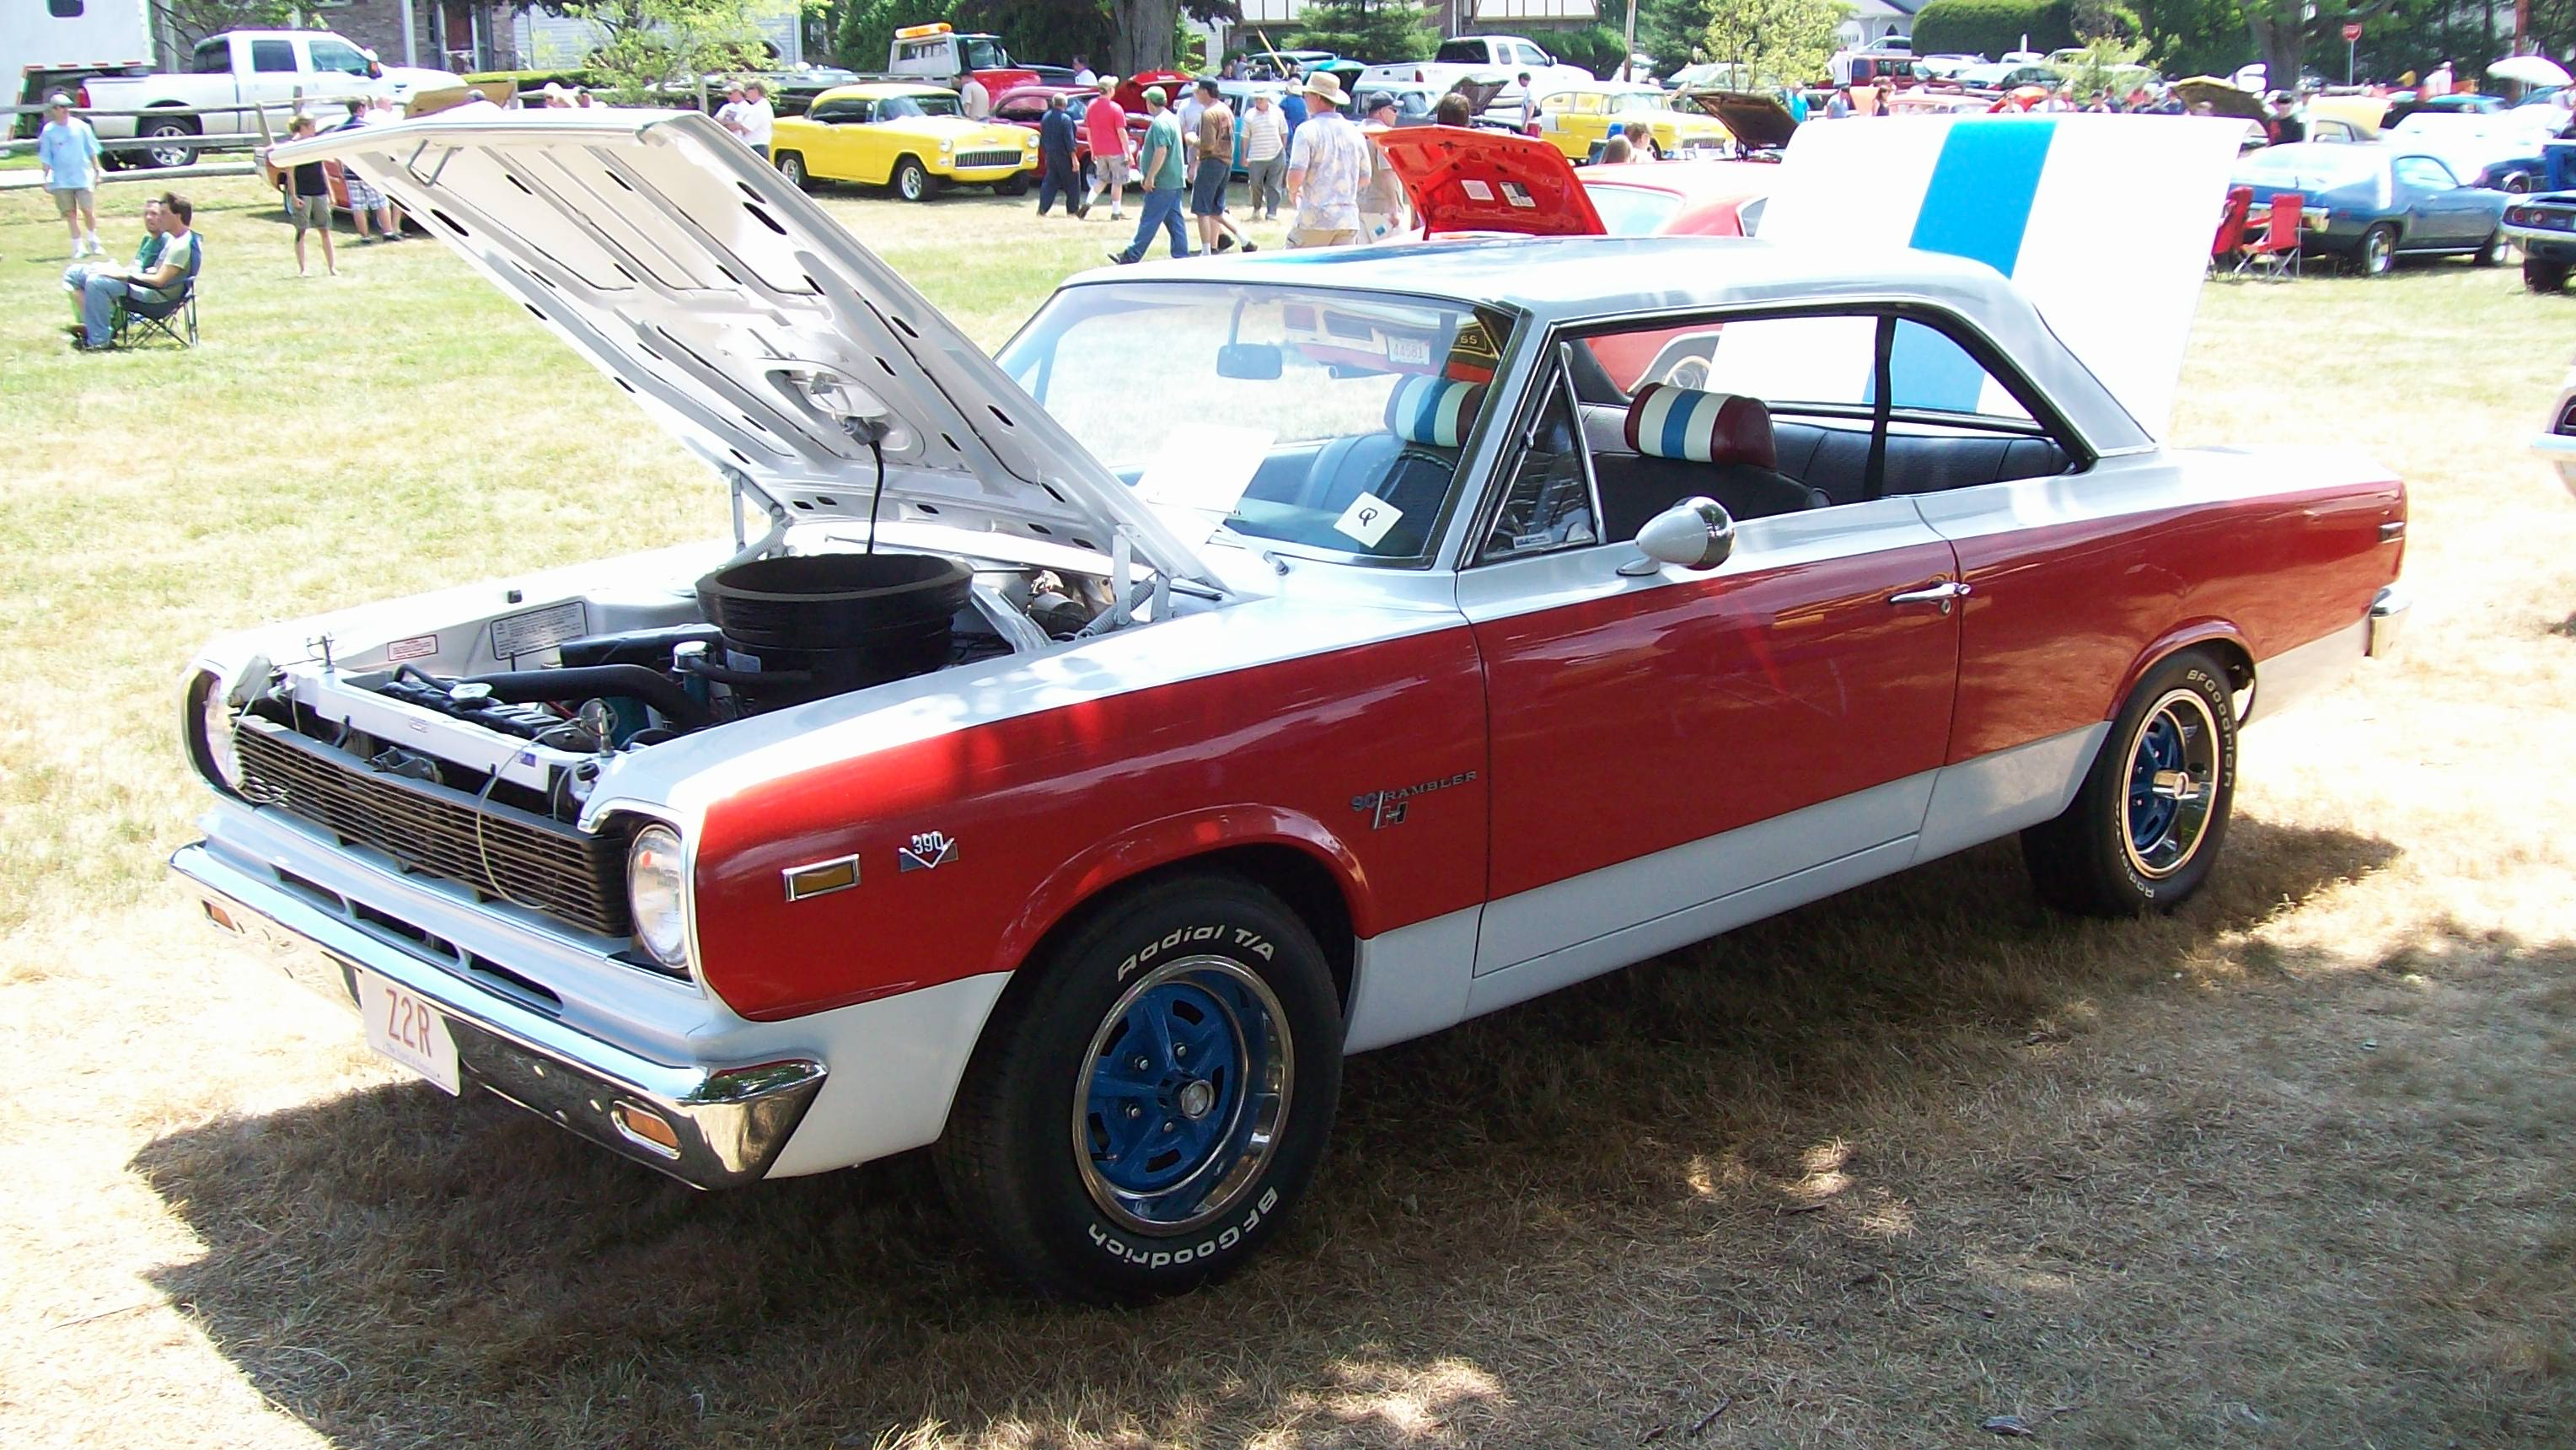 Ford Ranchero 1979 images #2668